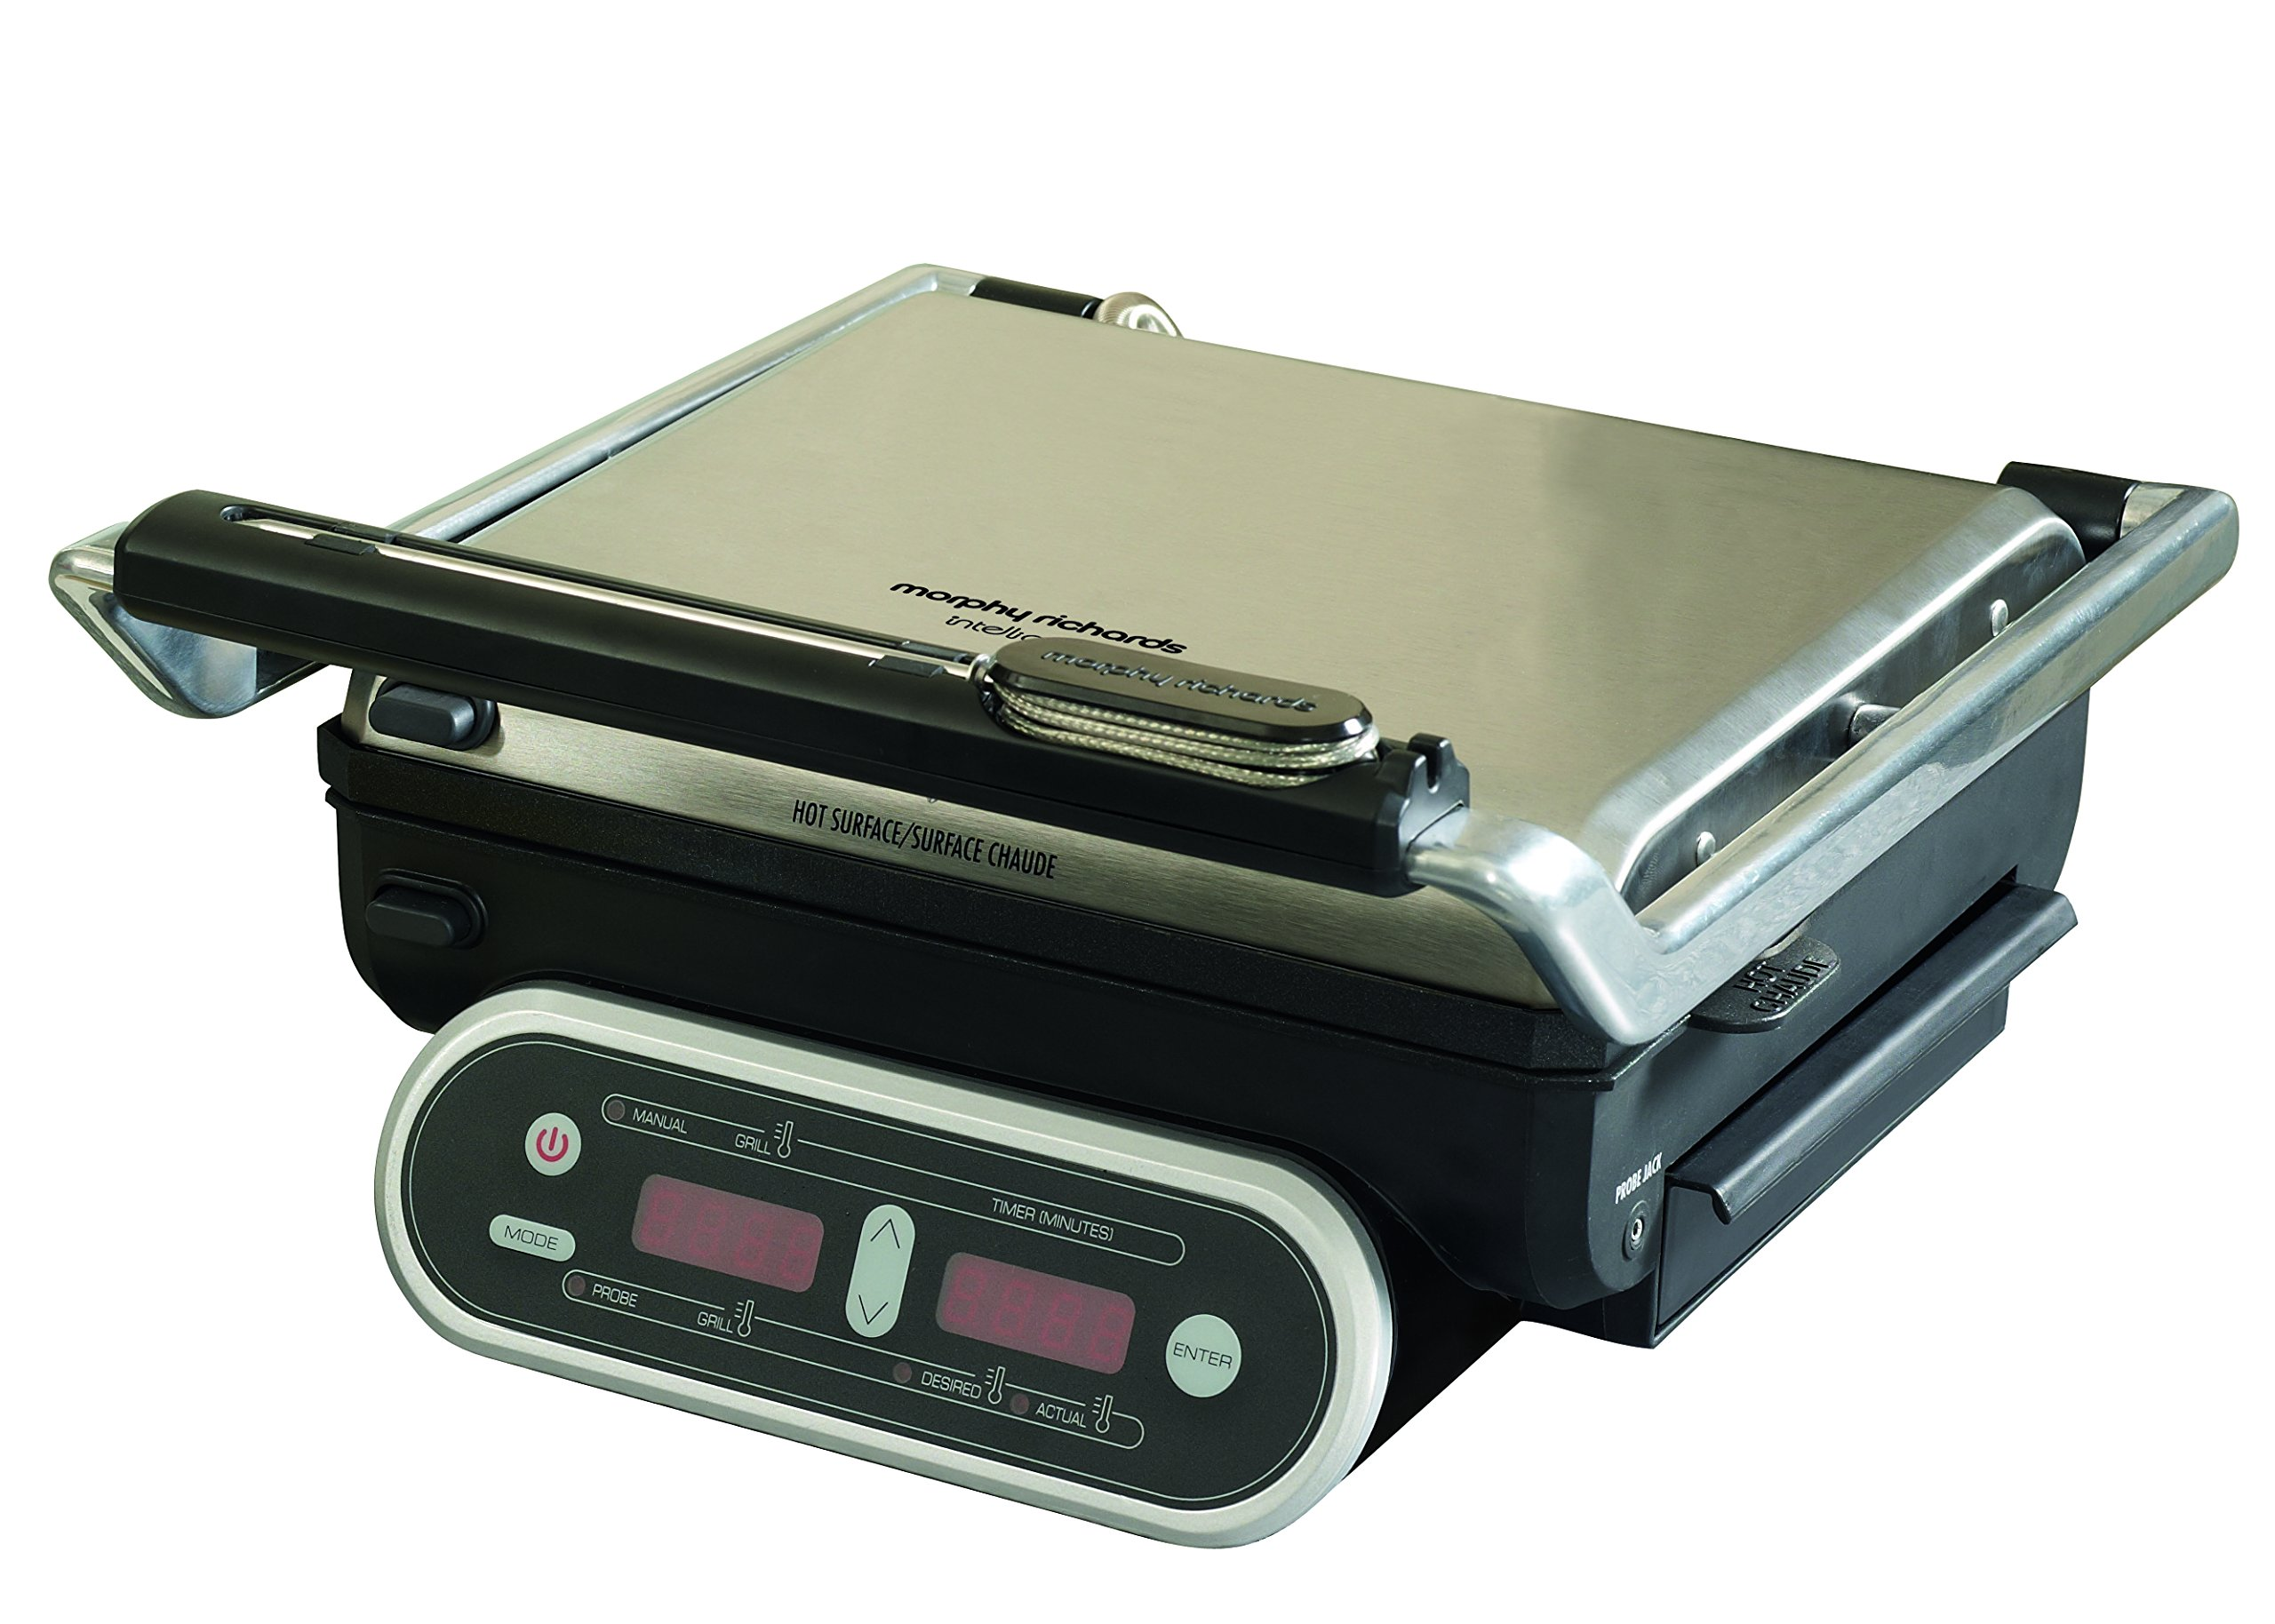 Morphy Richards Intelli Grill 48018 Digital Cooking Grill, Stainless Steel by Morphy Richards